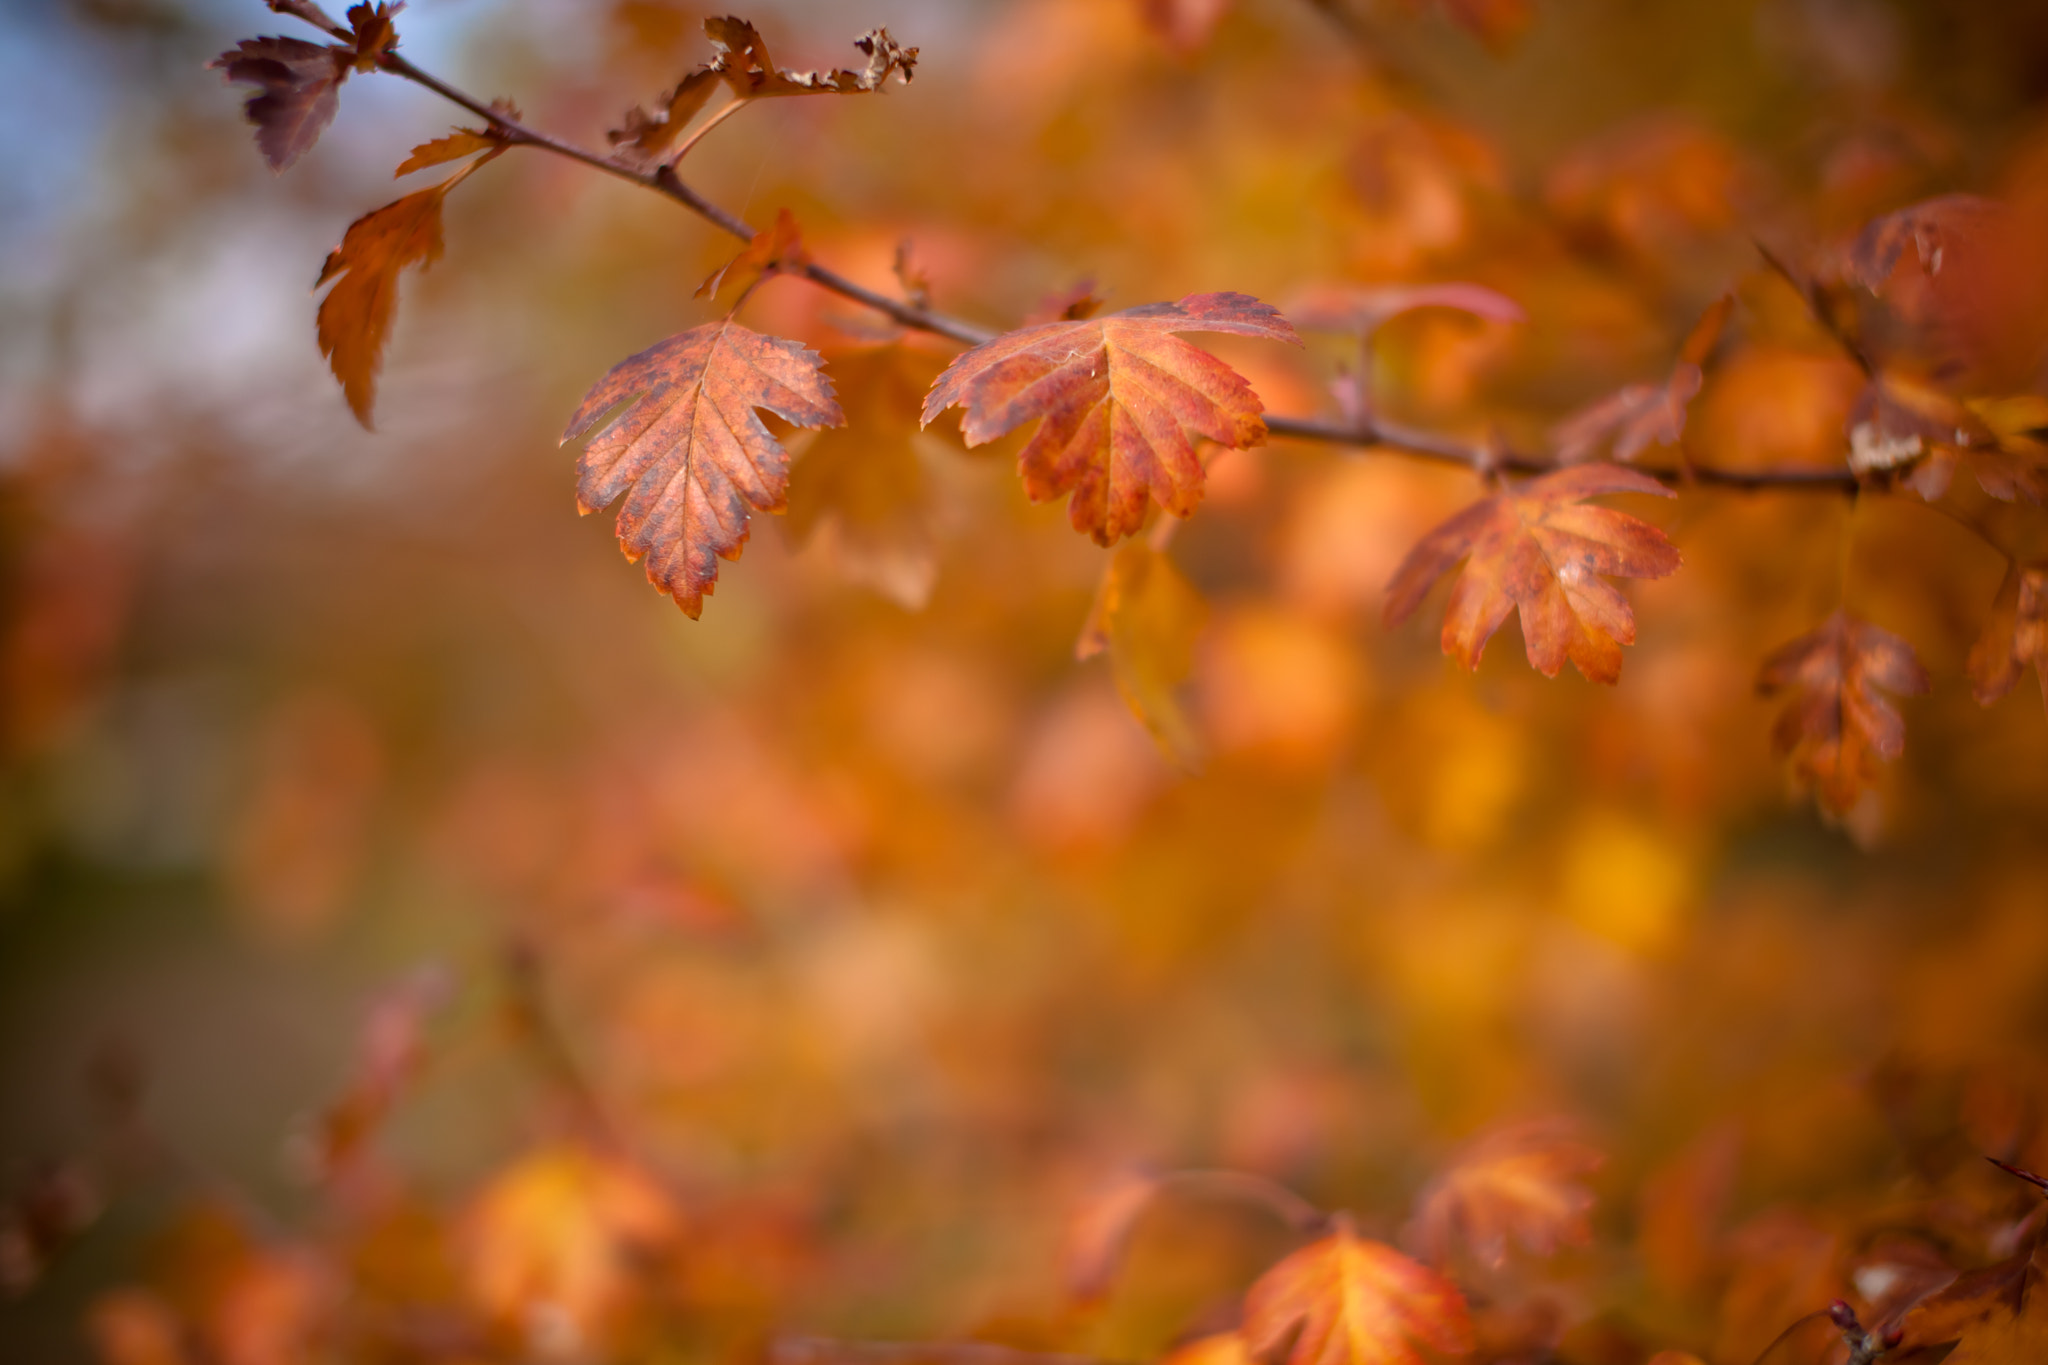 Photograph Leafs by Timur Ateev on 500px